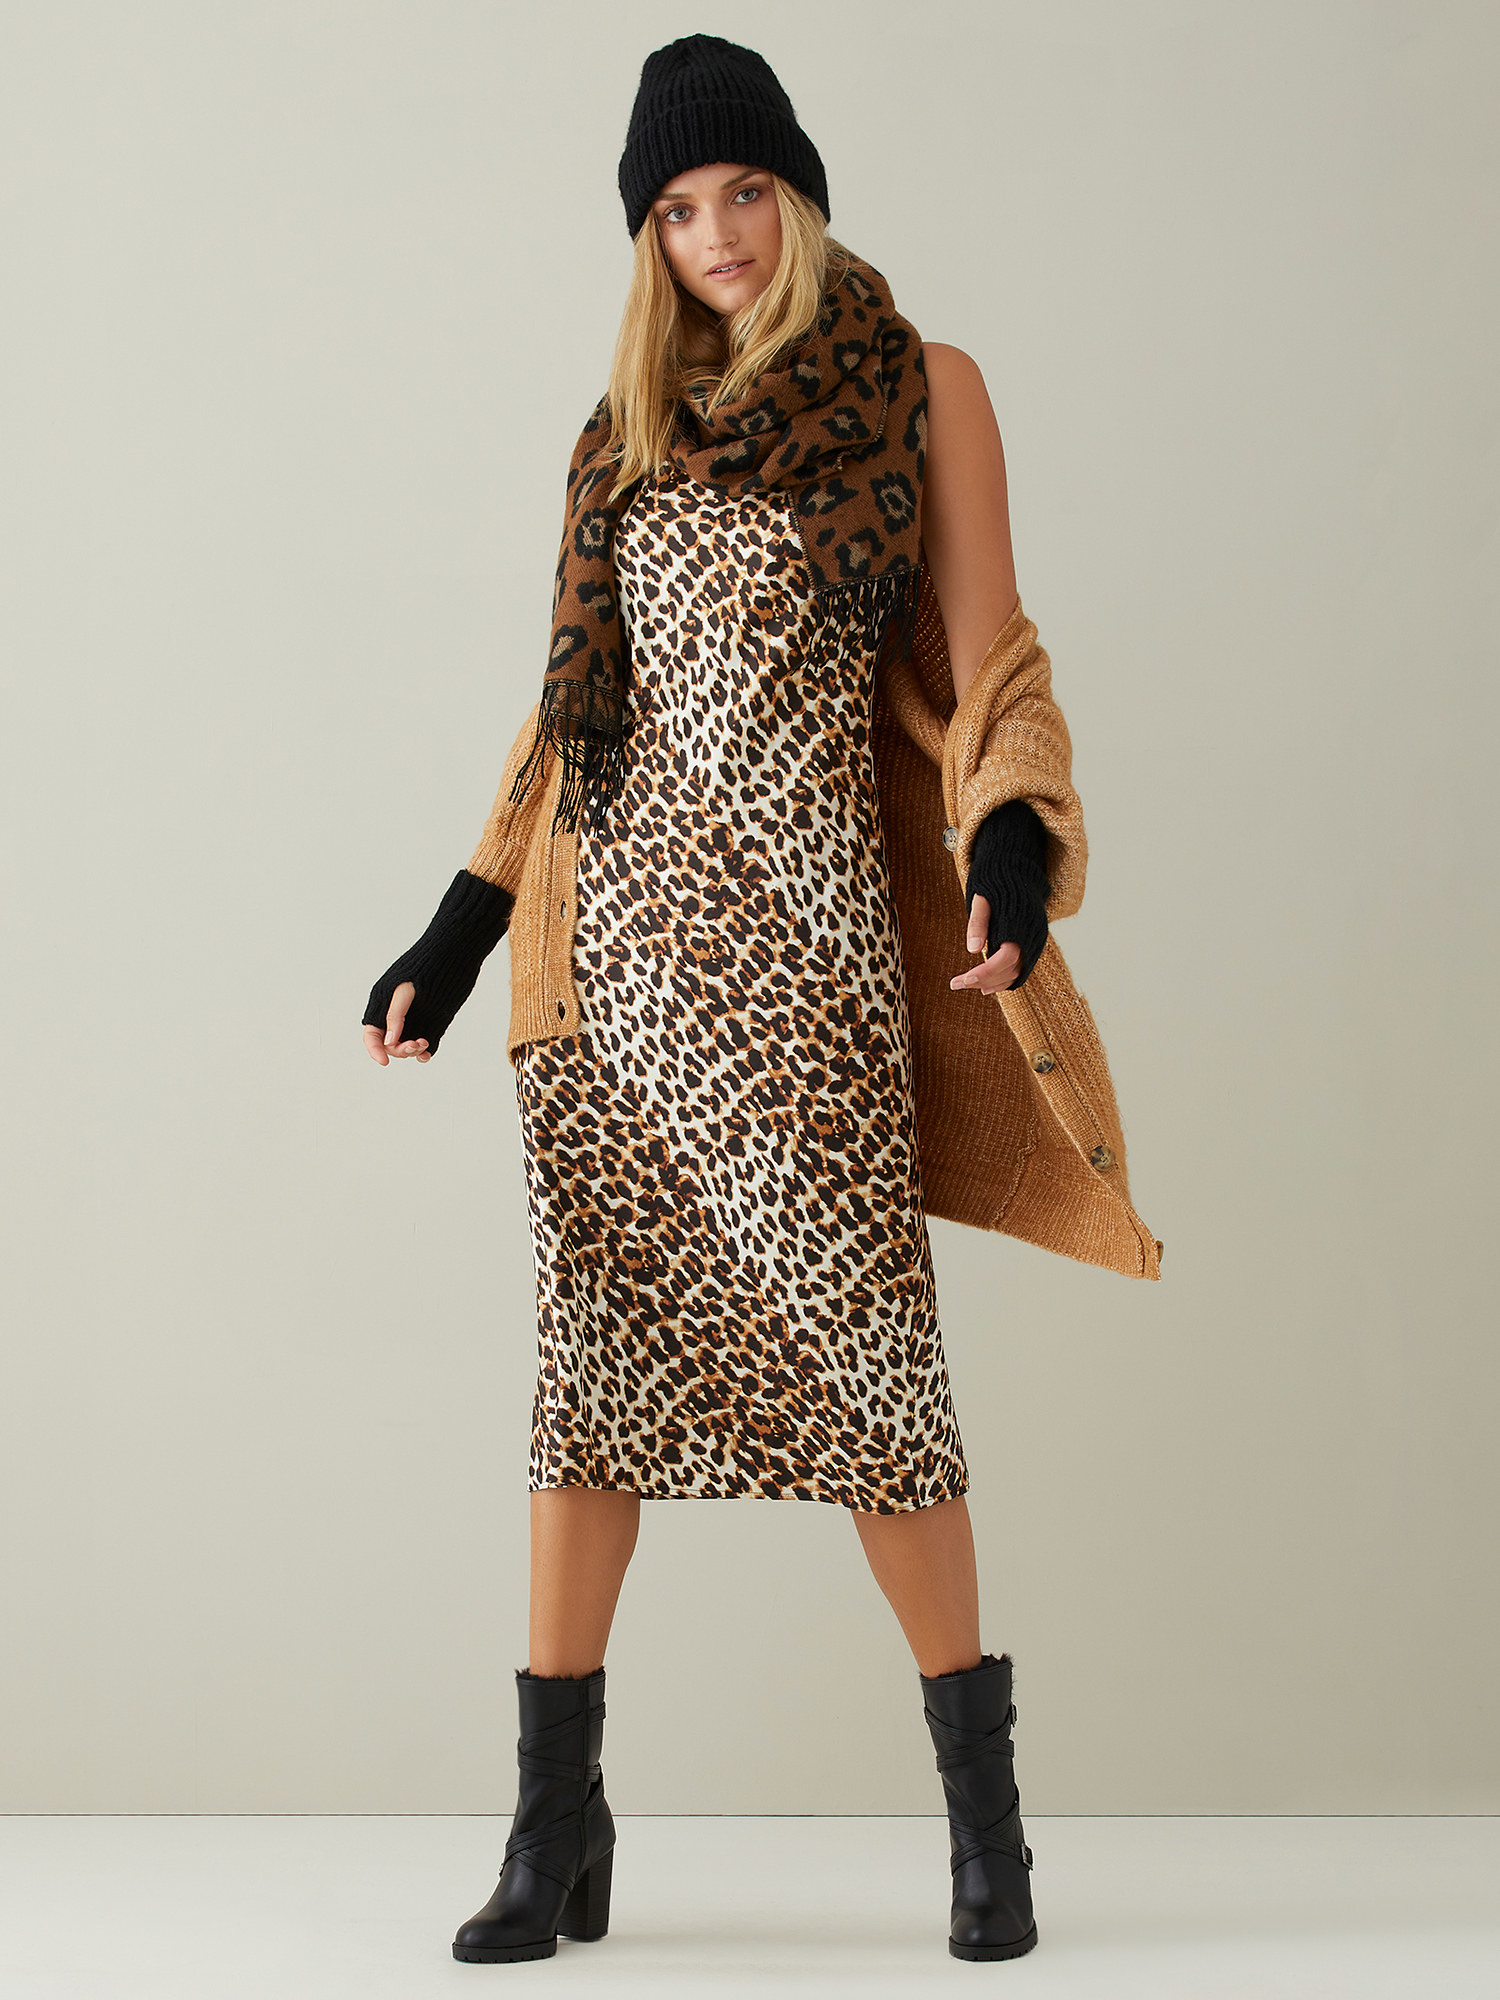 The leopard slip dress layered with a scarf and jacket